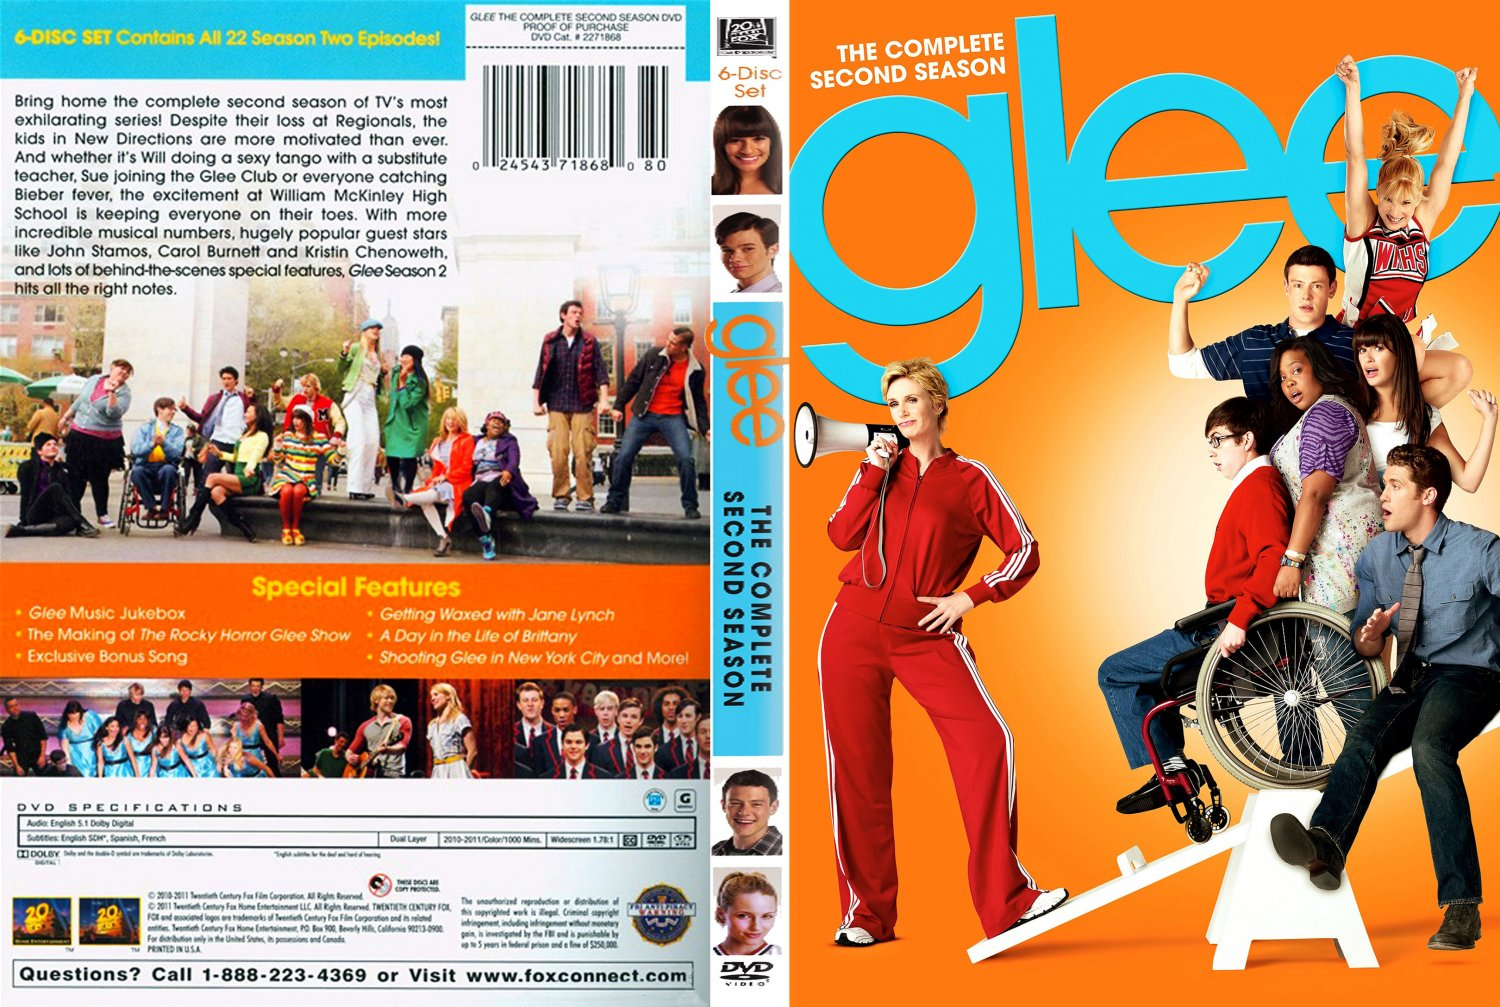 Season 2 Glee Glee Season 2 Dvd Cover